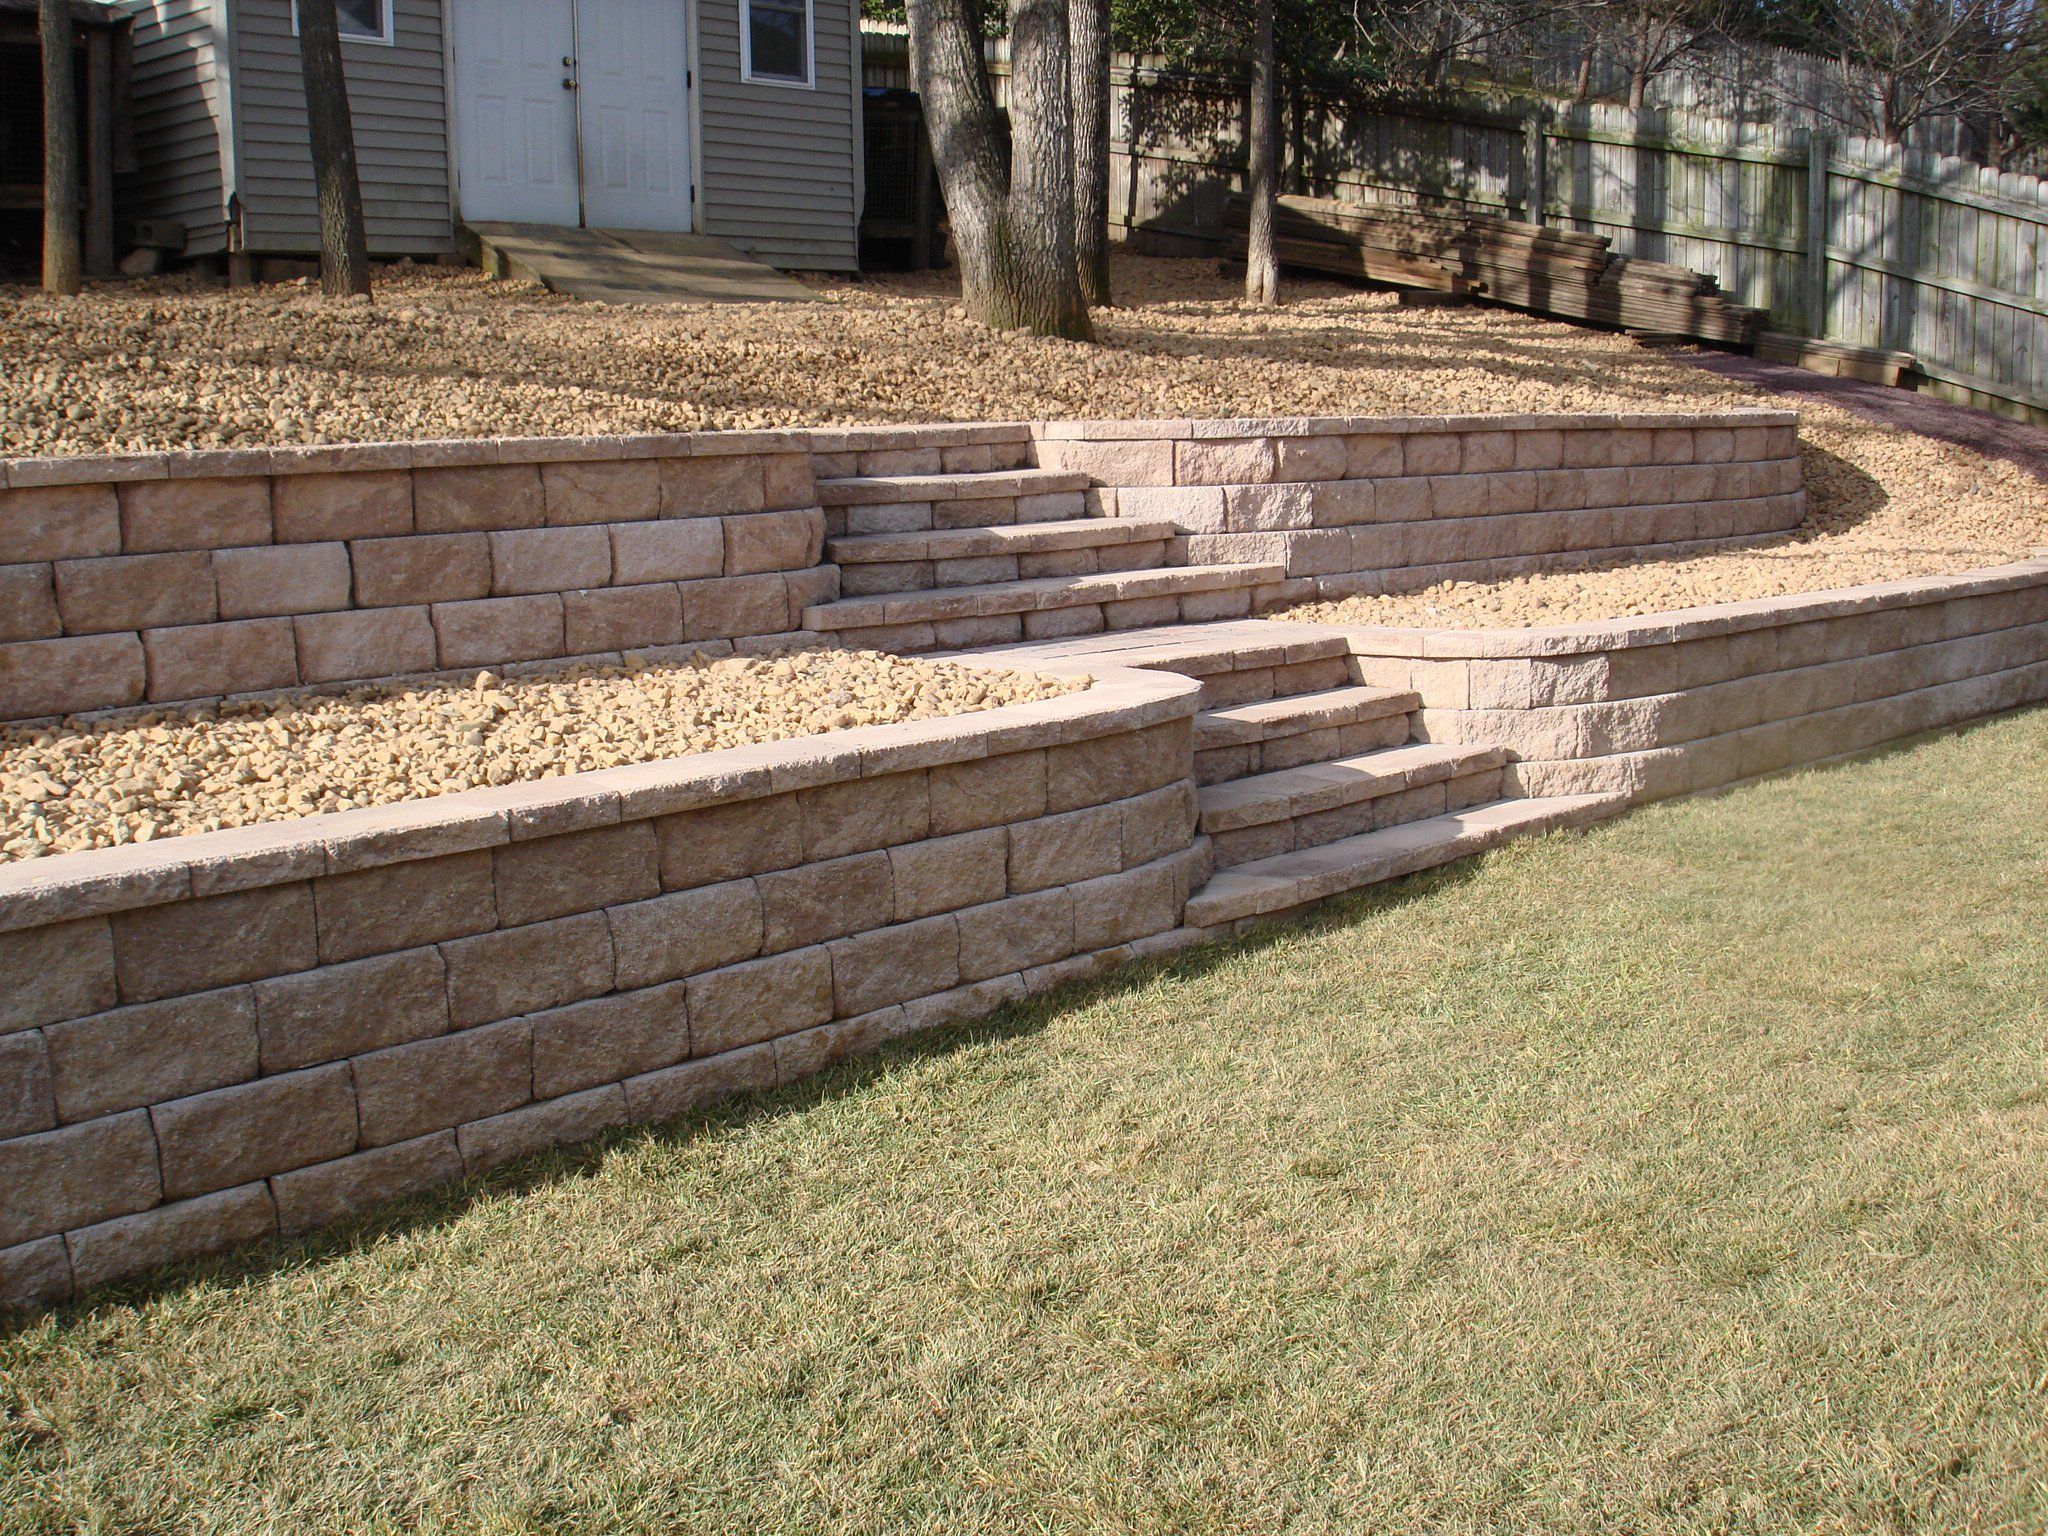 Tiered Retaining Wall and Steps | Backyard retaining walls ...